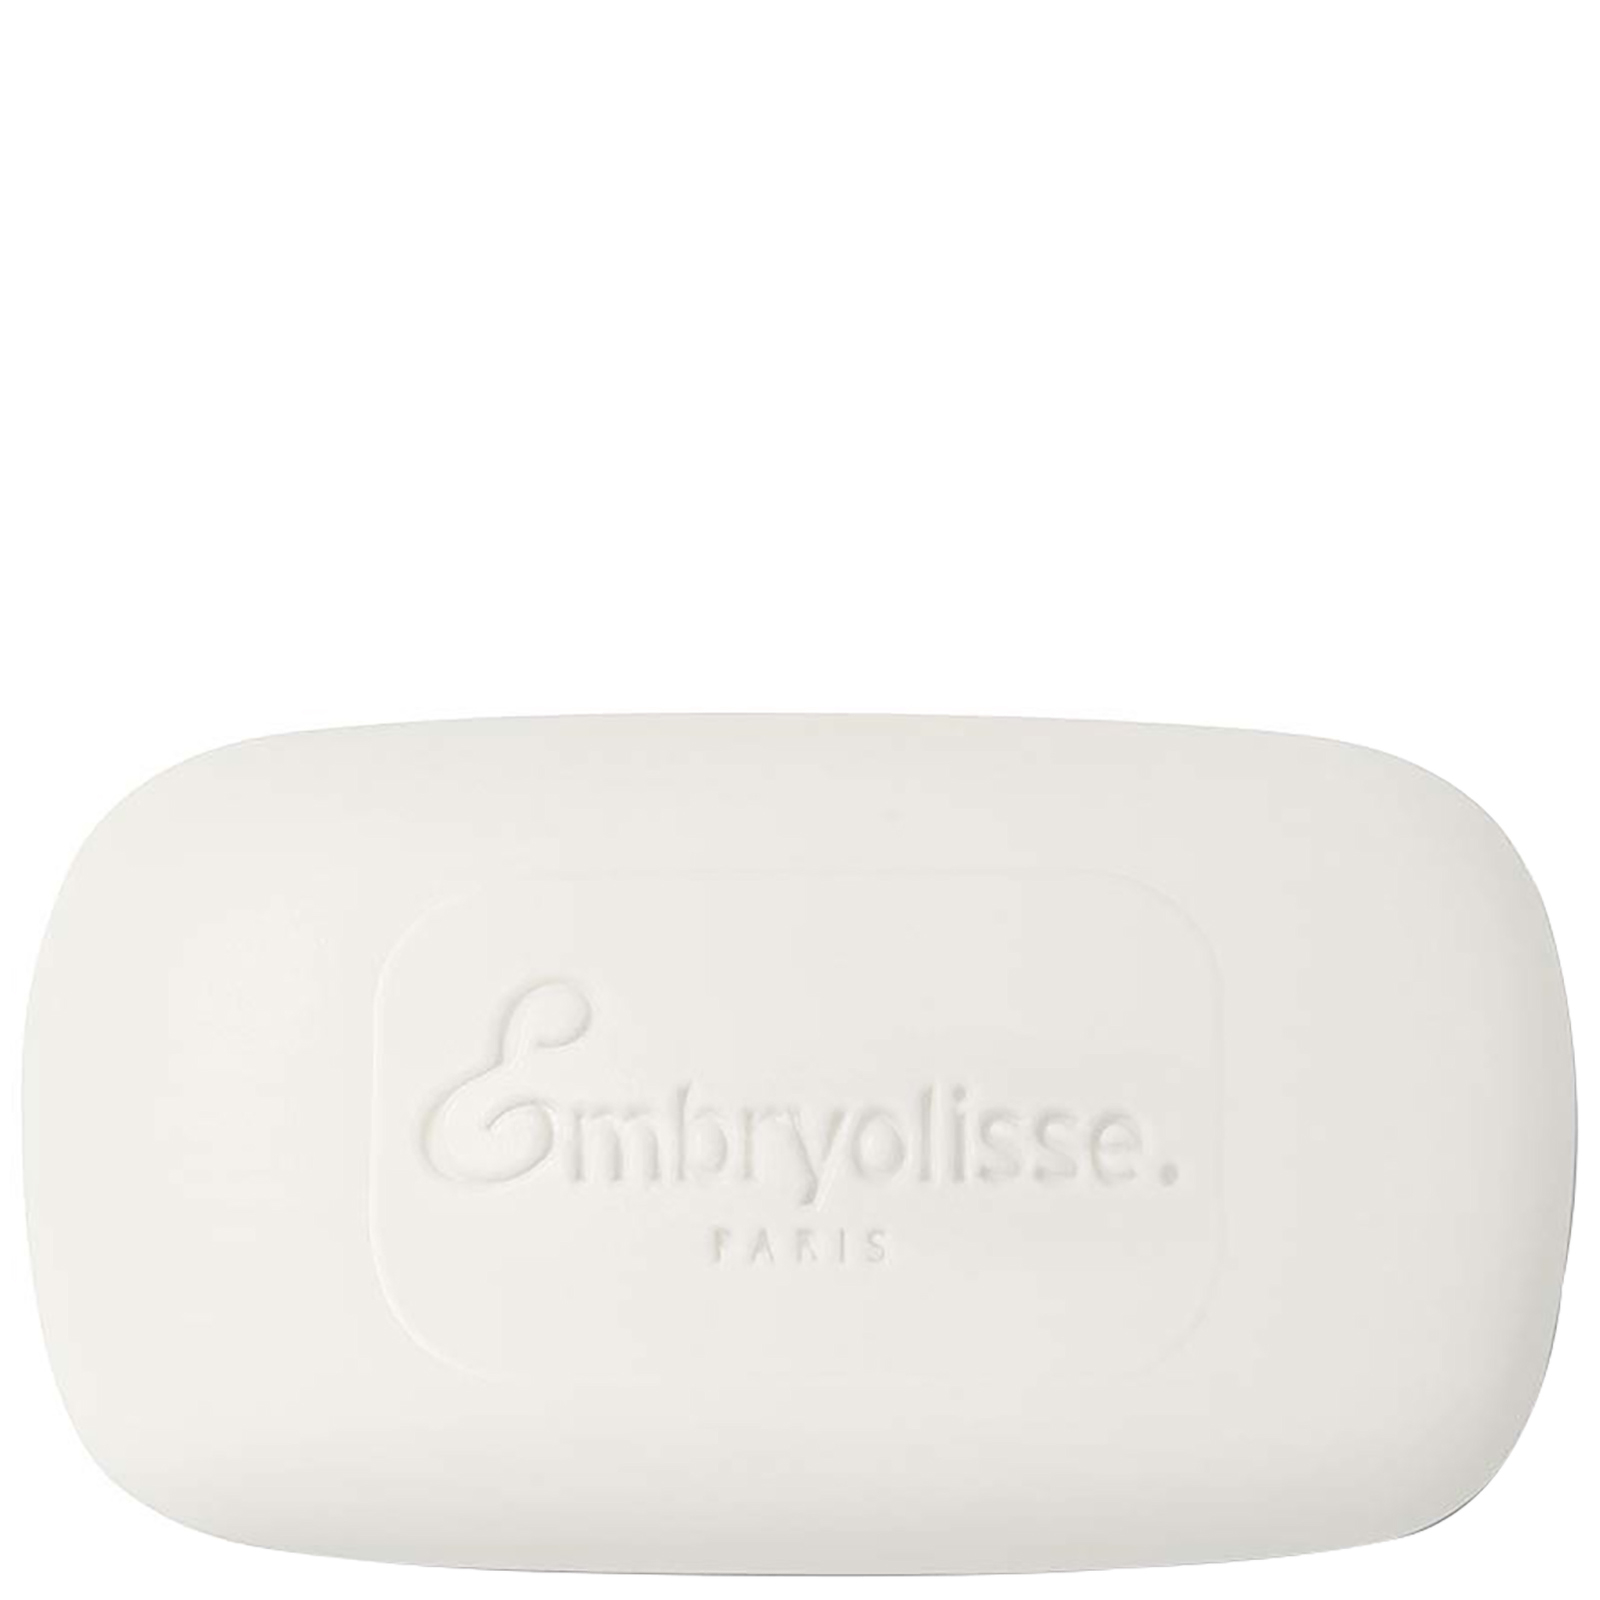 Embryolisse. Laboratoires Cleansers & Makeup Removers Gentle Cleansing Bar 100g